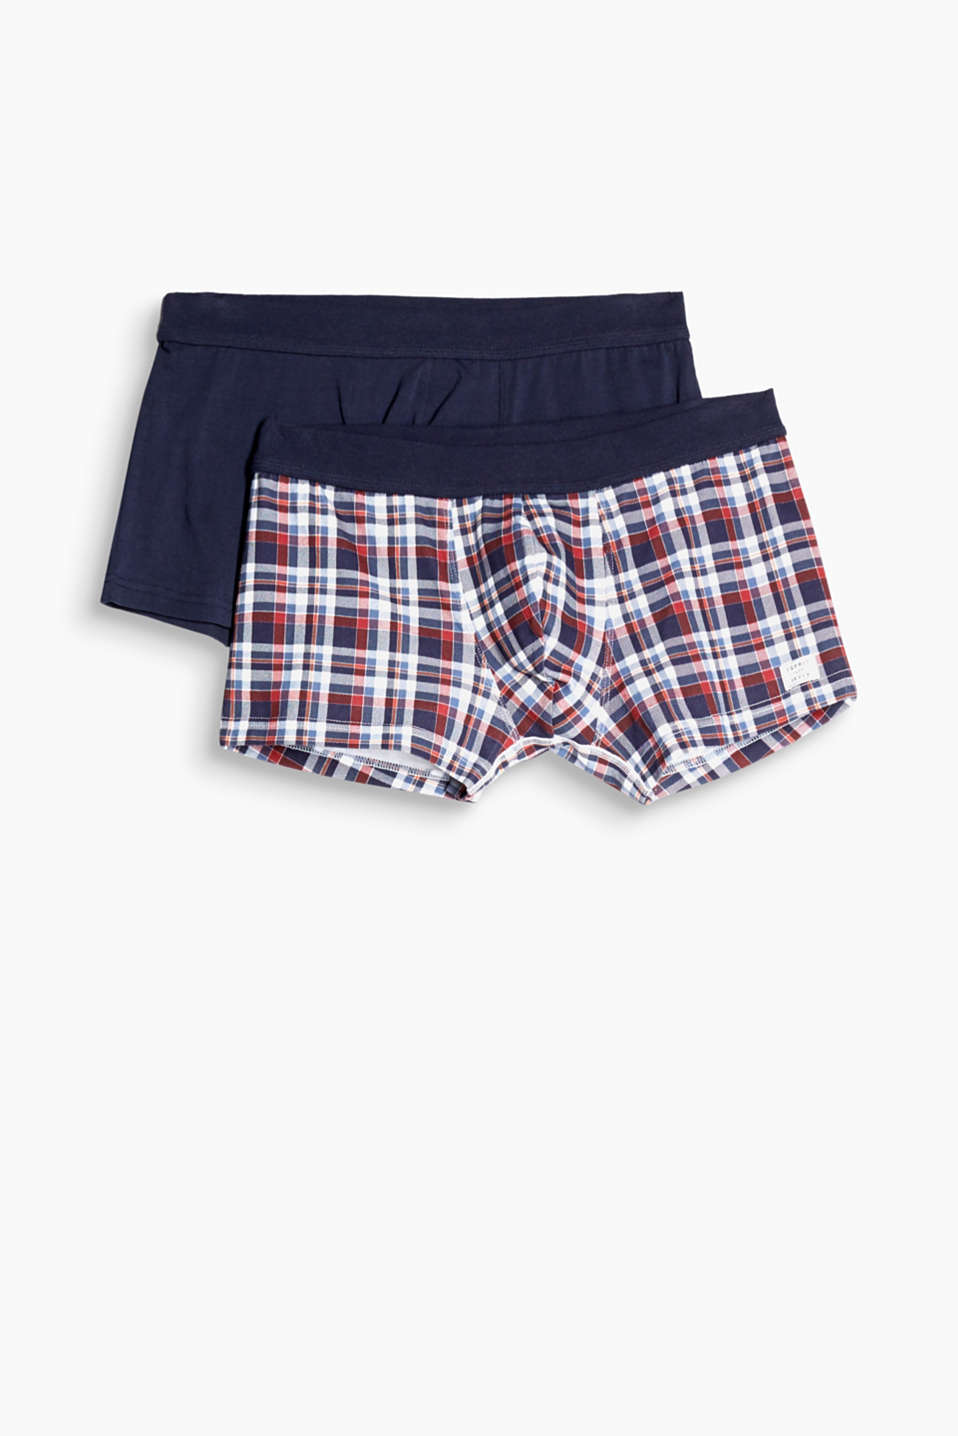 These hipster shorts in stretch cotton are comfortable, functional and trendy. the whole package!